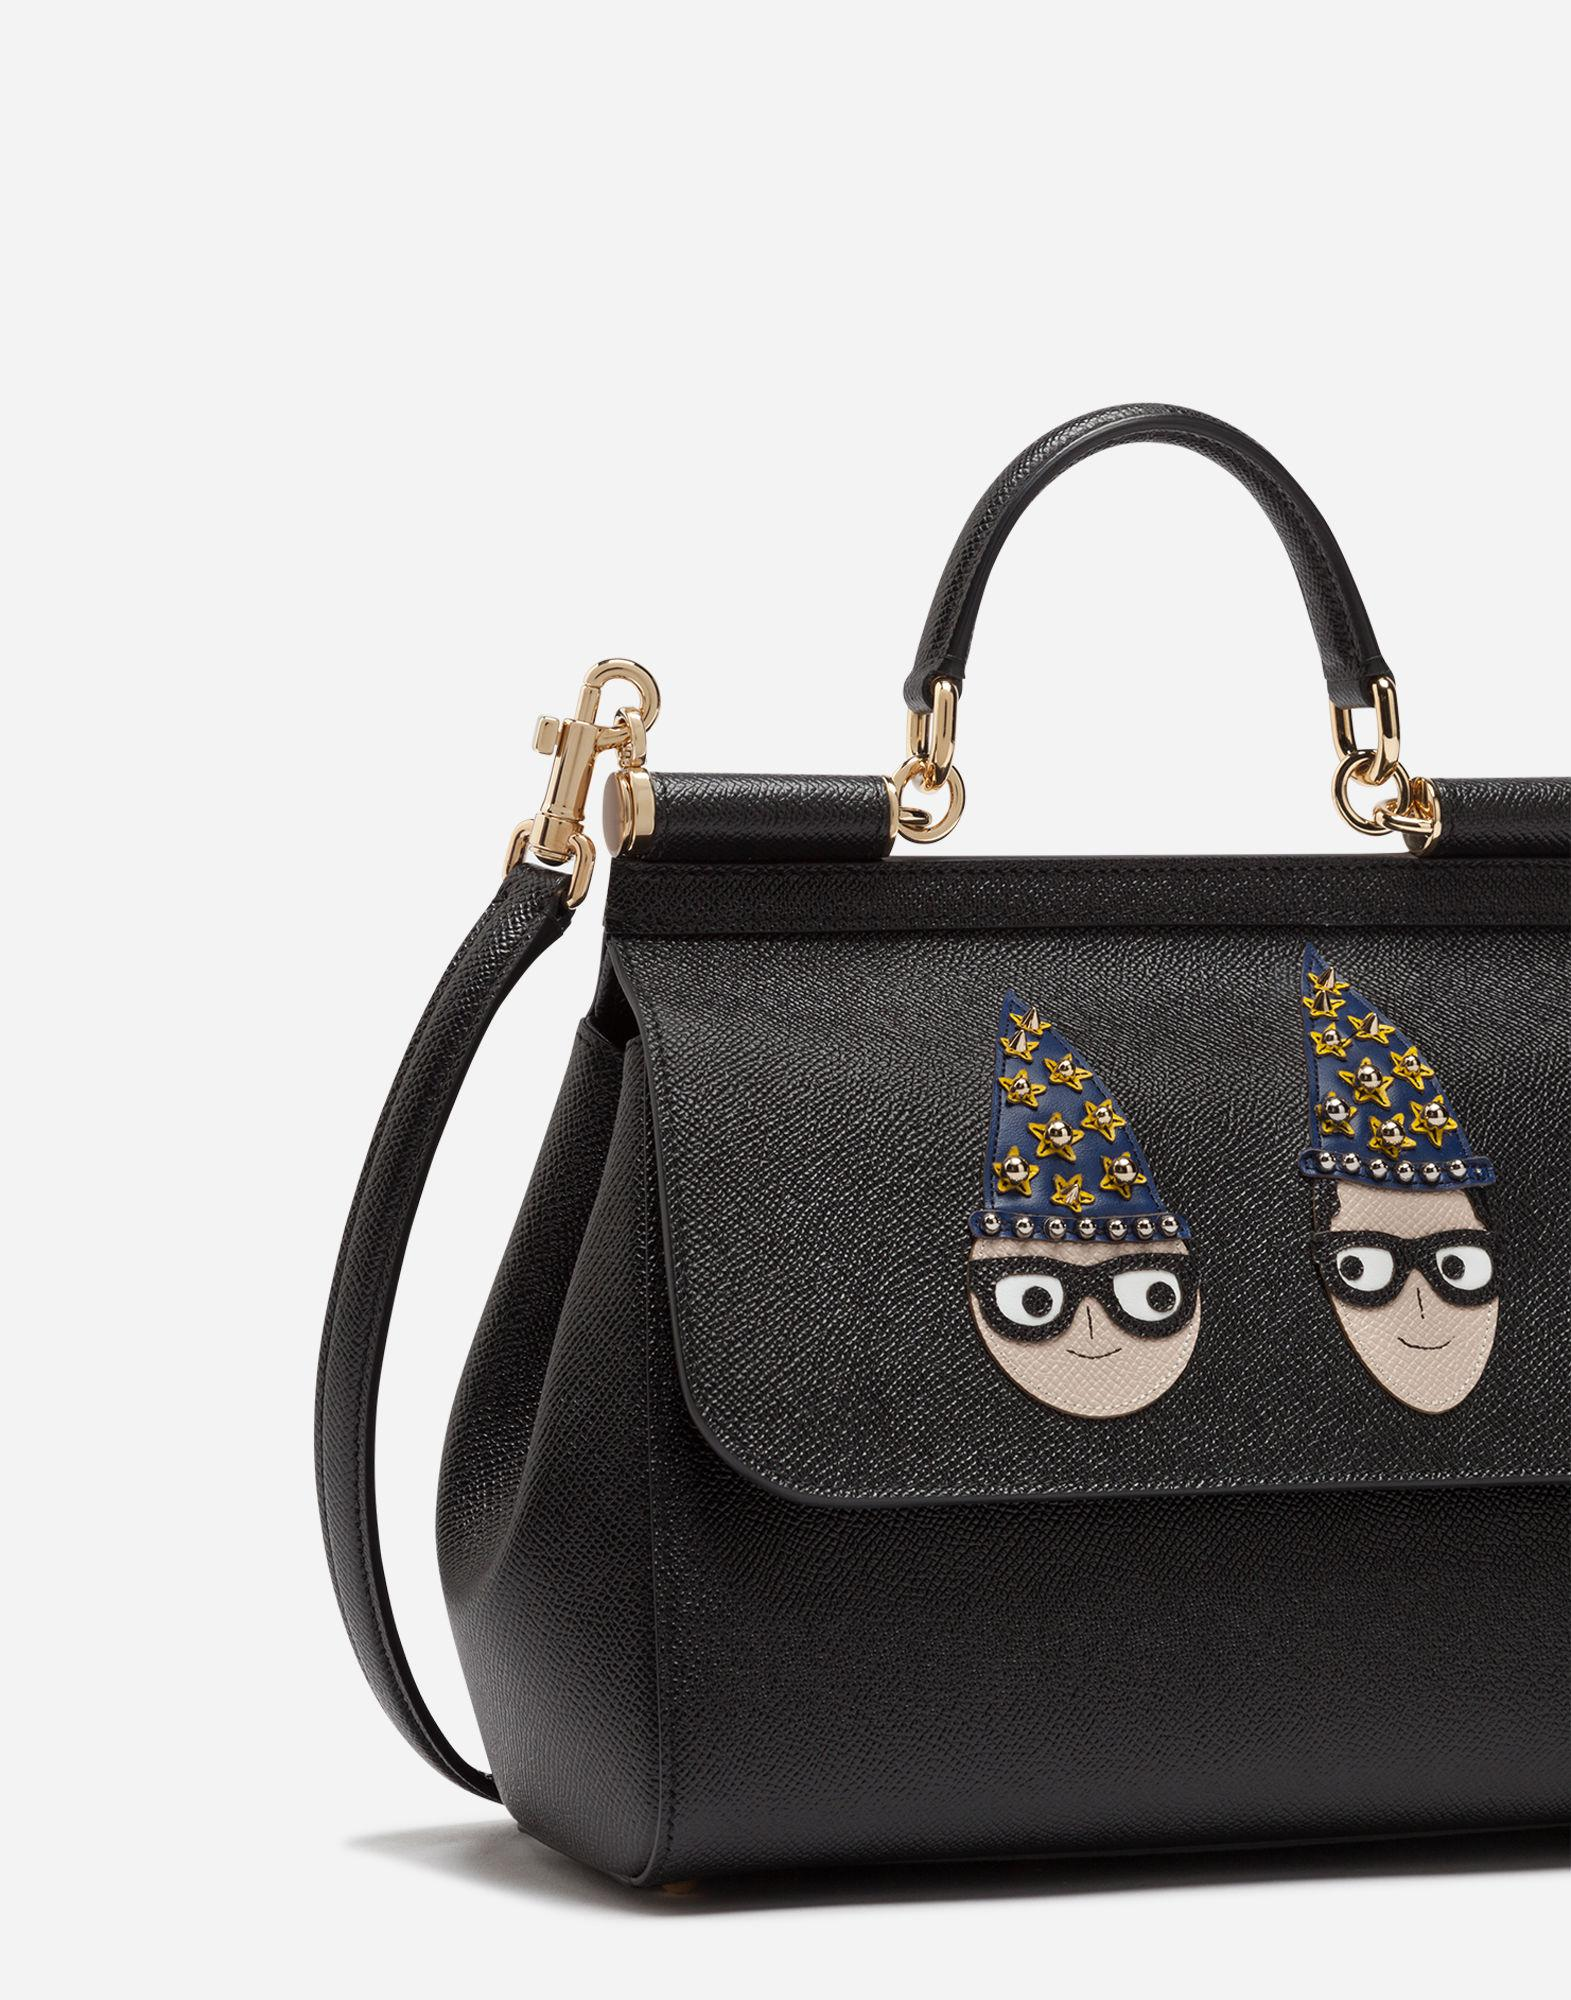 e855169249 Lyst - Dolce   Gabbana Medium Sicily Bag In Dauphine Calfskin With Patches  Of The Designers in Black